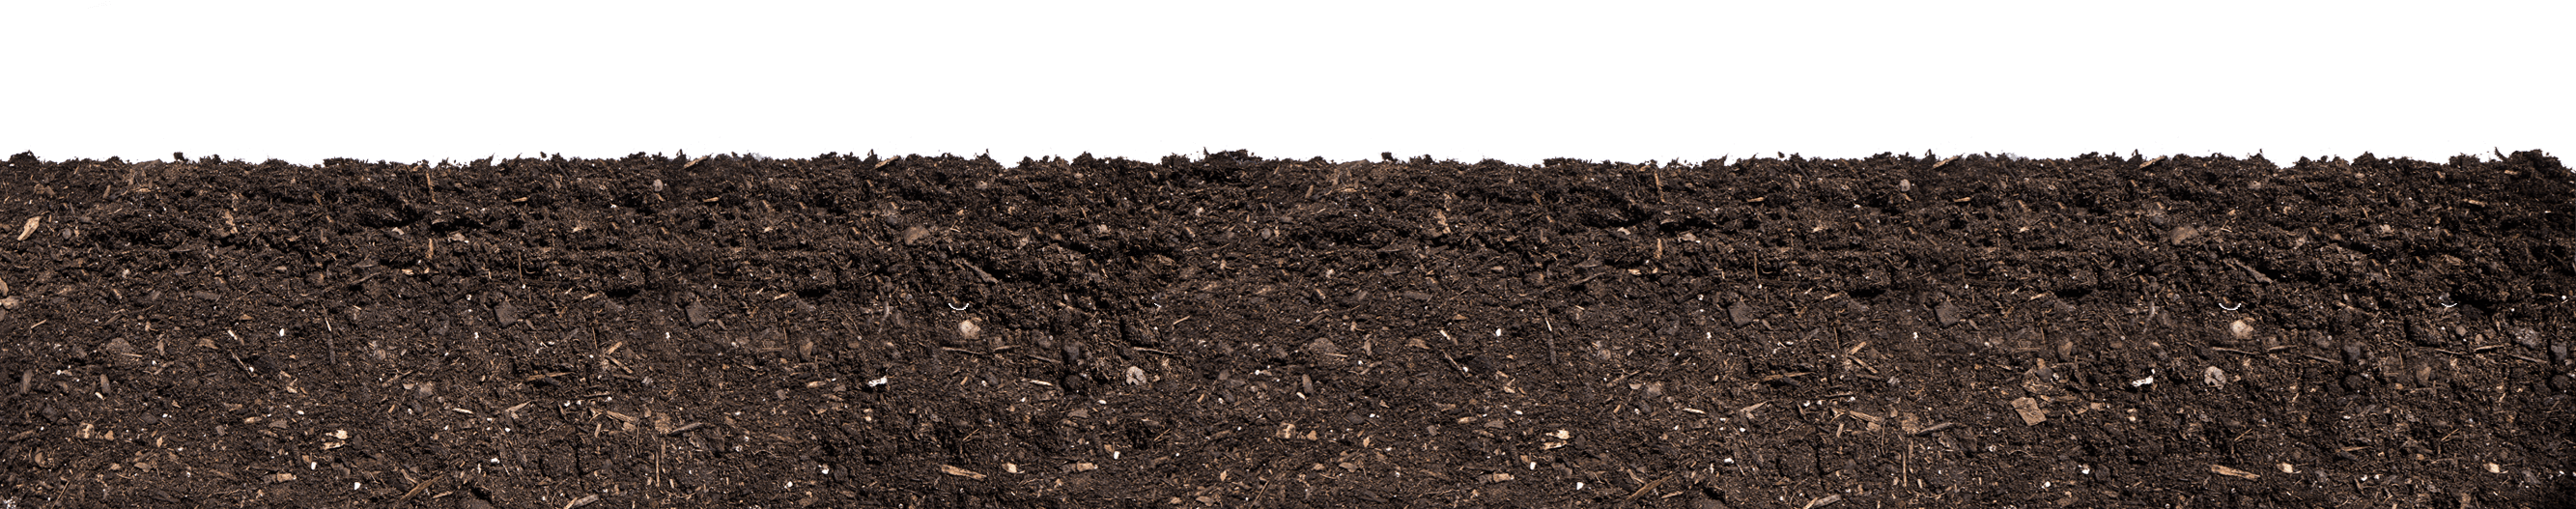 Soil png. Dirt pictures transparent free